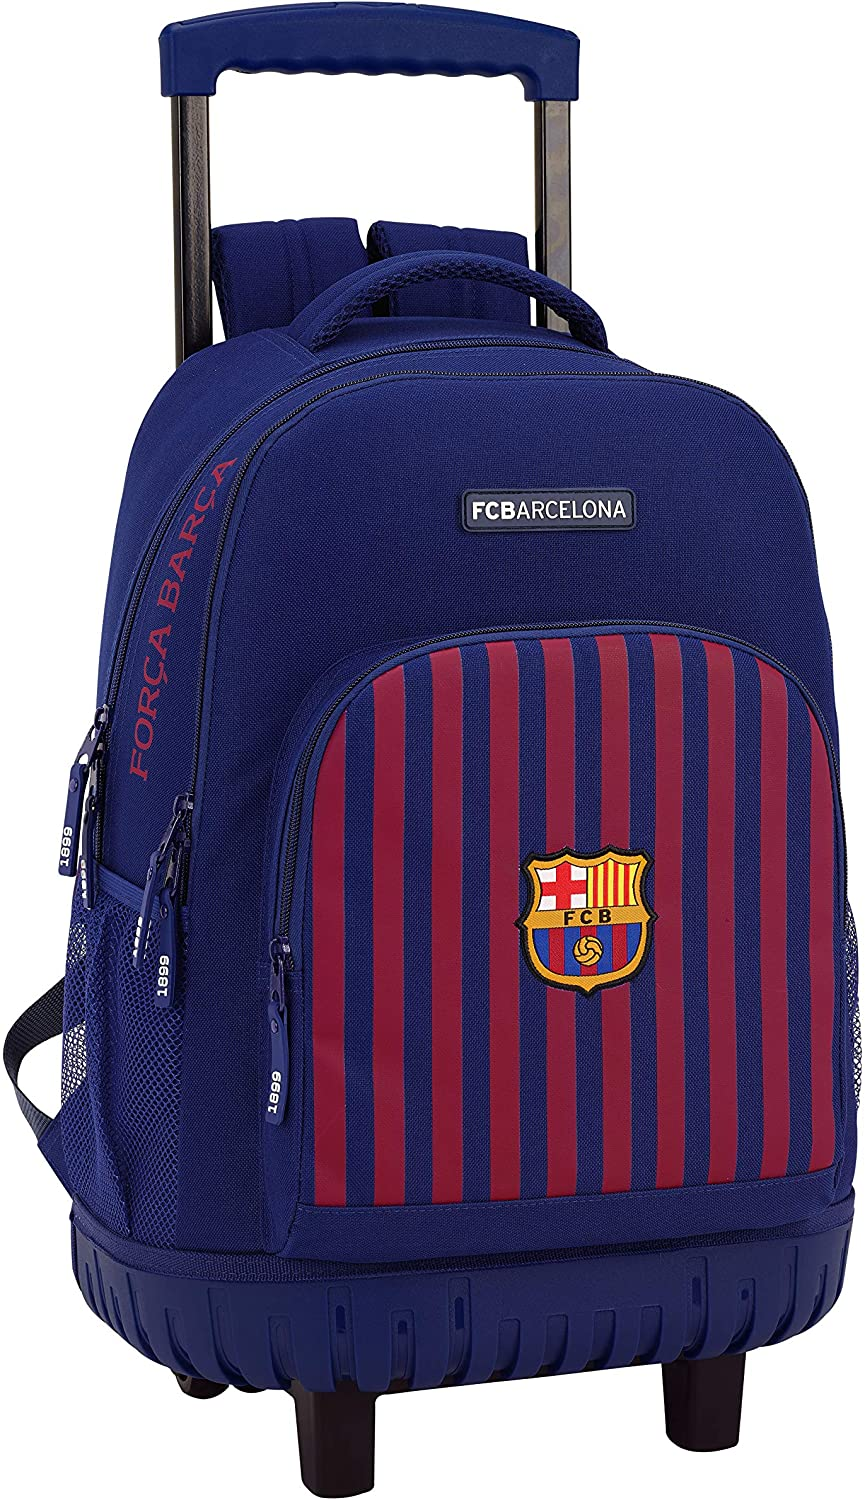 Safta FC Barcelona Large Backpack Trolley with Wheels - TOYBOX Toy Shop